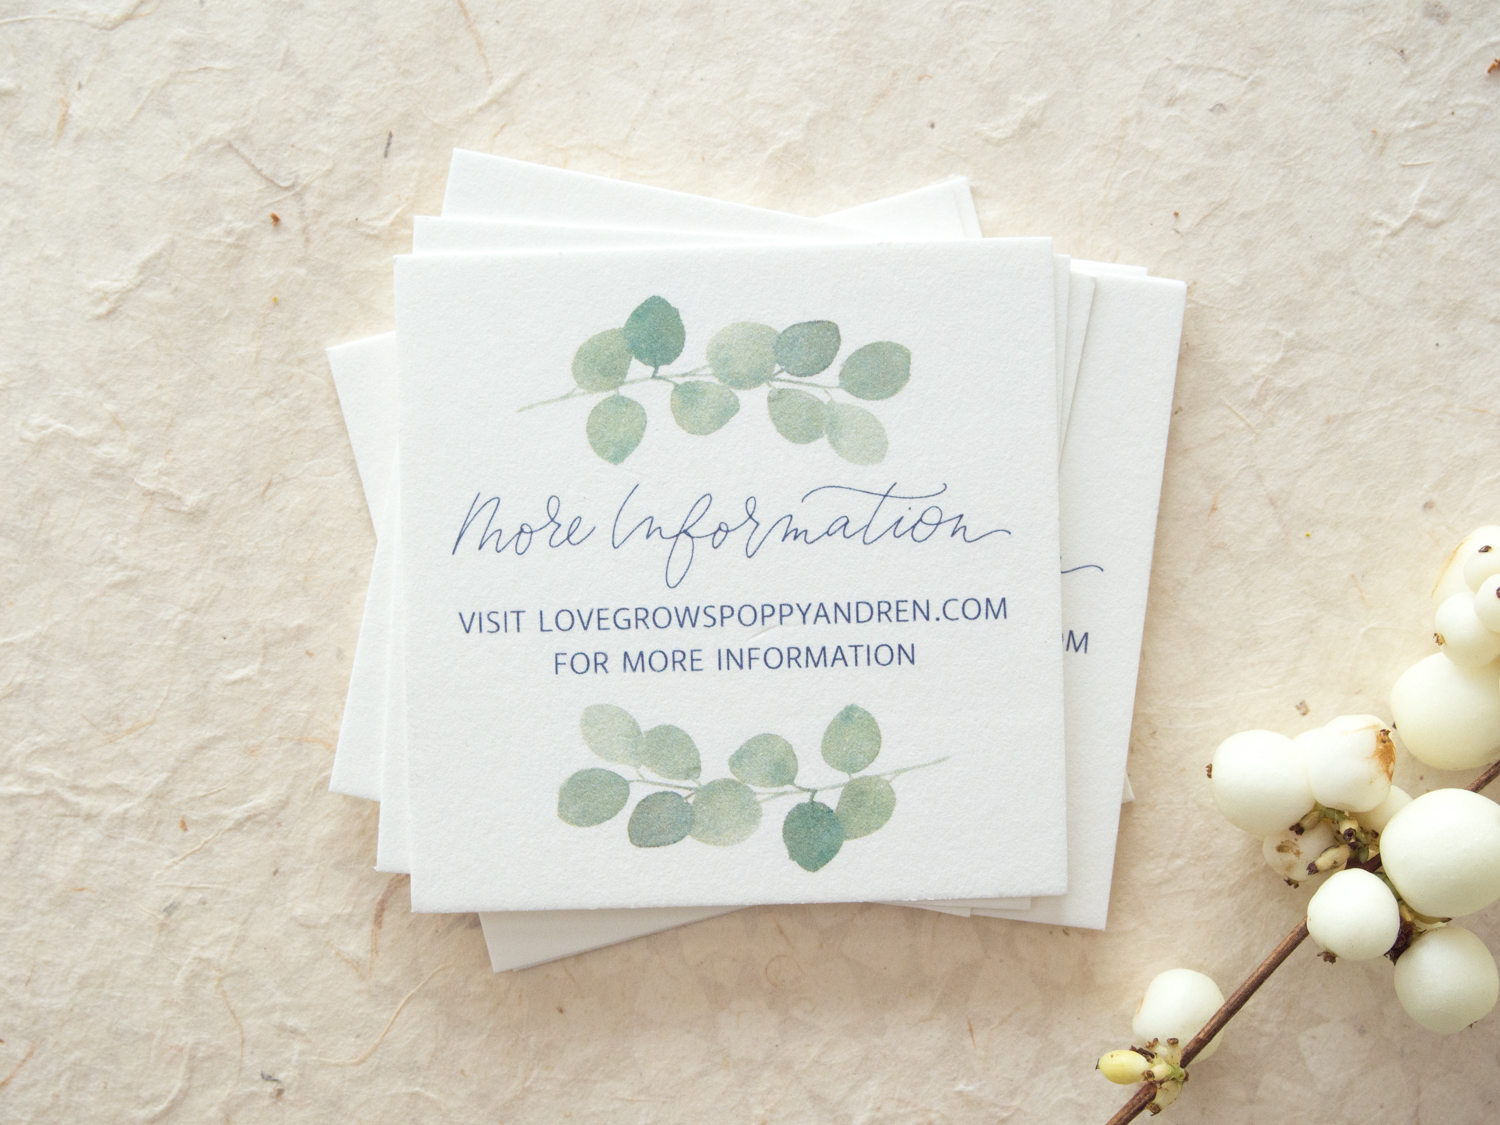 Watercolor Greenery Details Card from Bright Room Studio